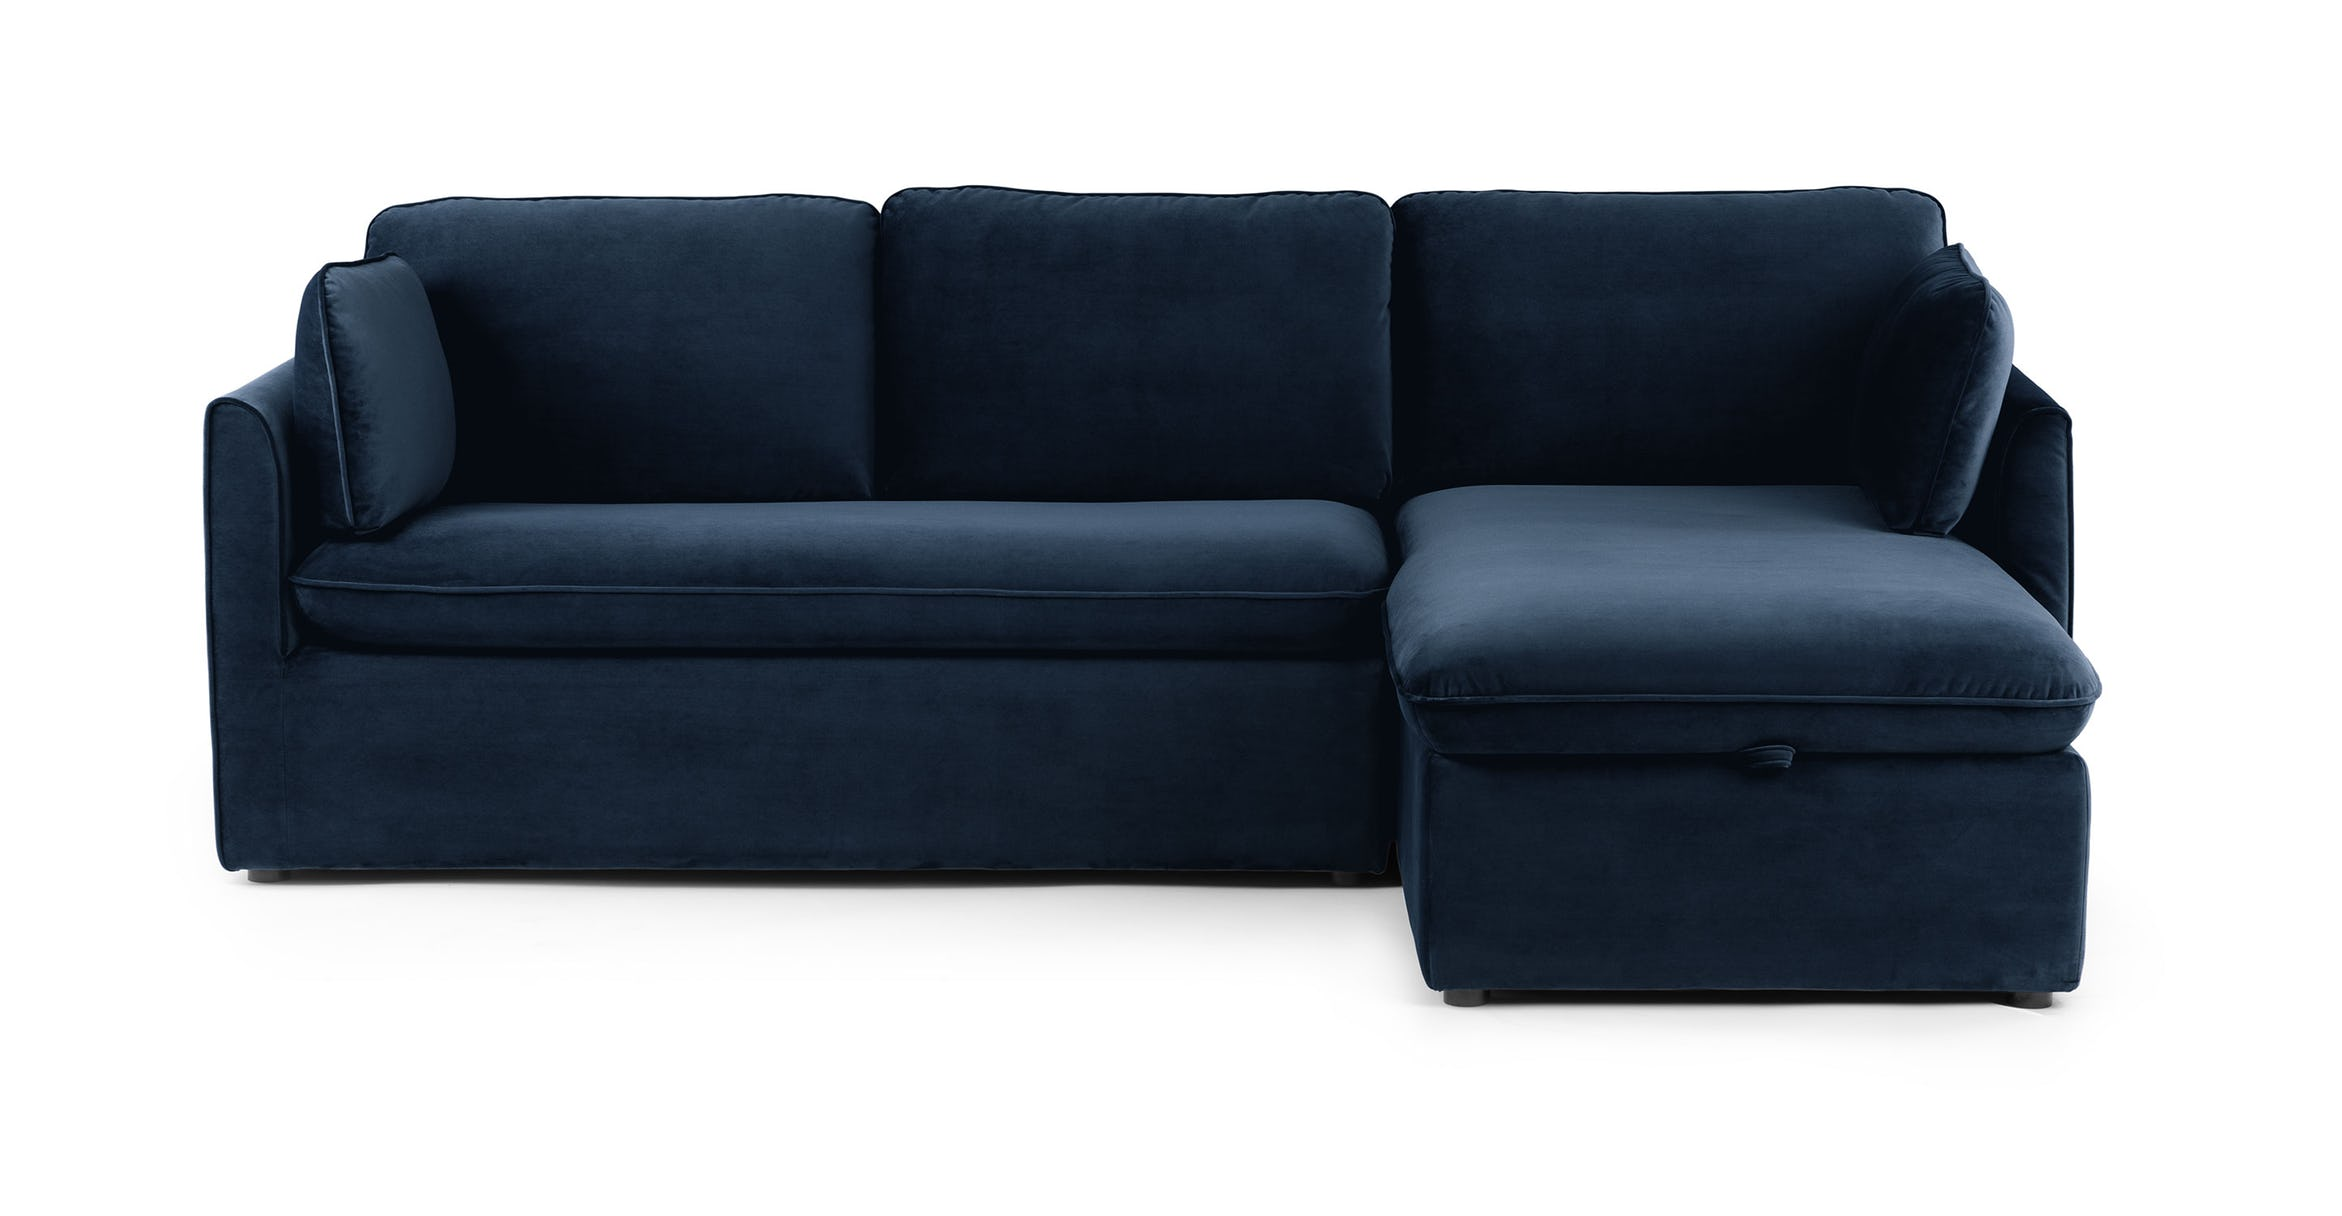 Sectional made from a left facing loveseat and a right facing chaise